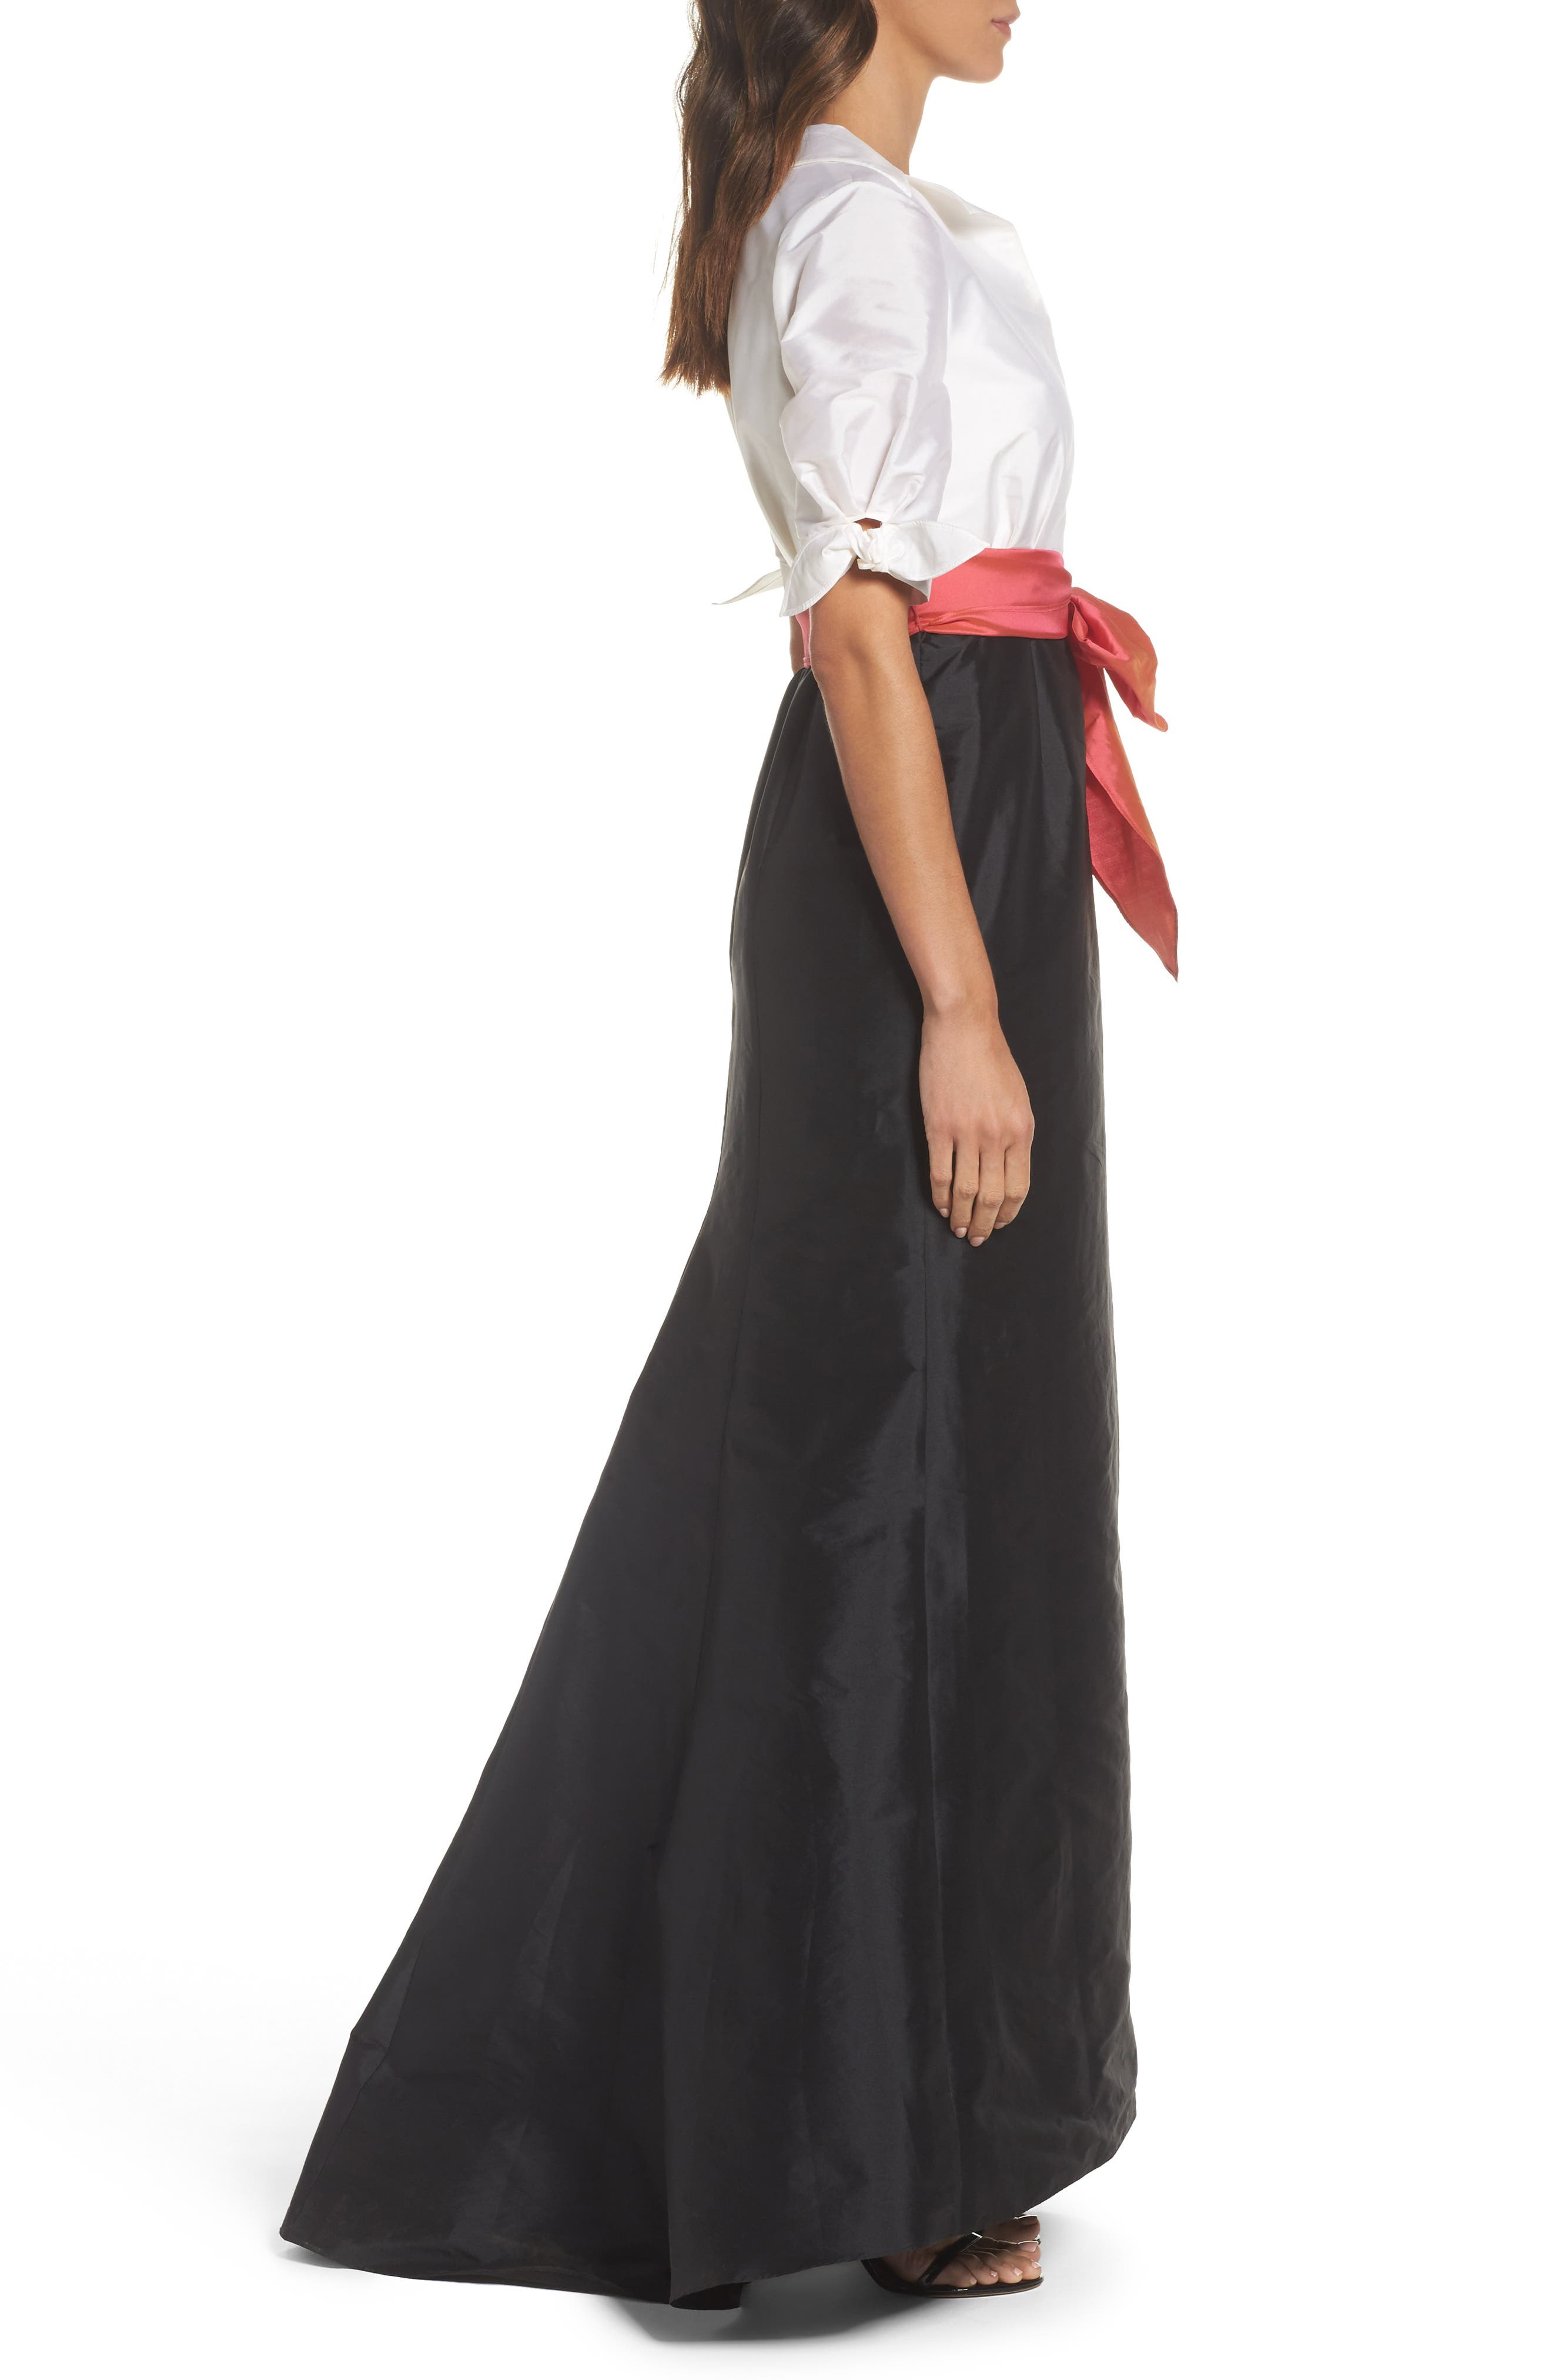 Adrianna Pappell Taffeta Mermaid Gown with Train,                             Alternate thumbnail 3, color,                             Ivory/ Black